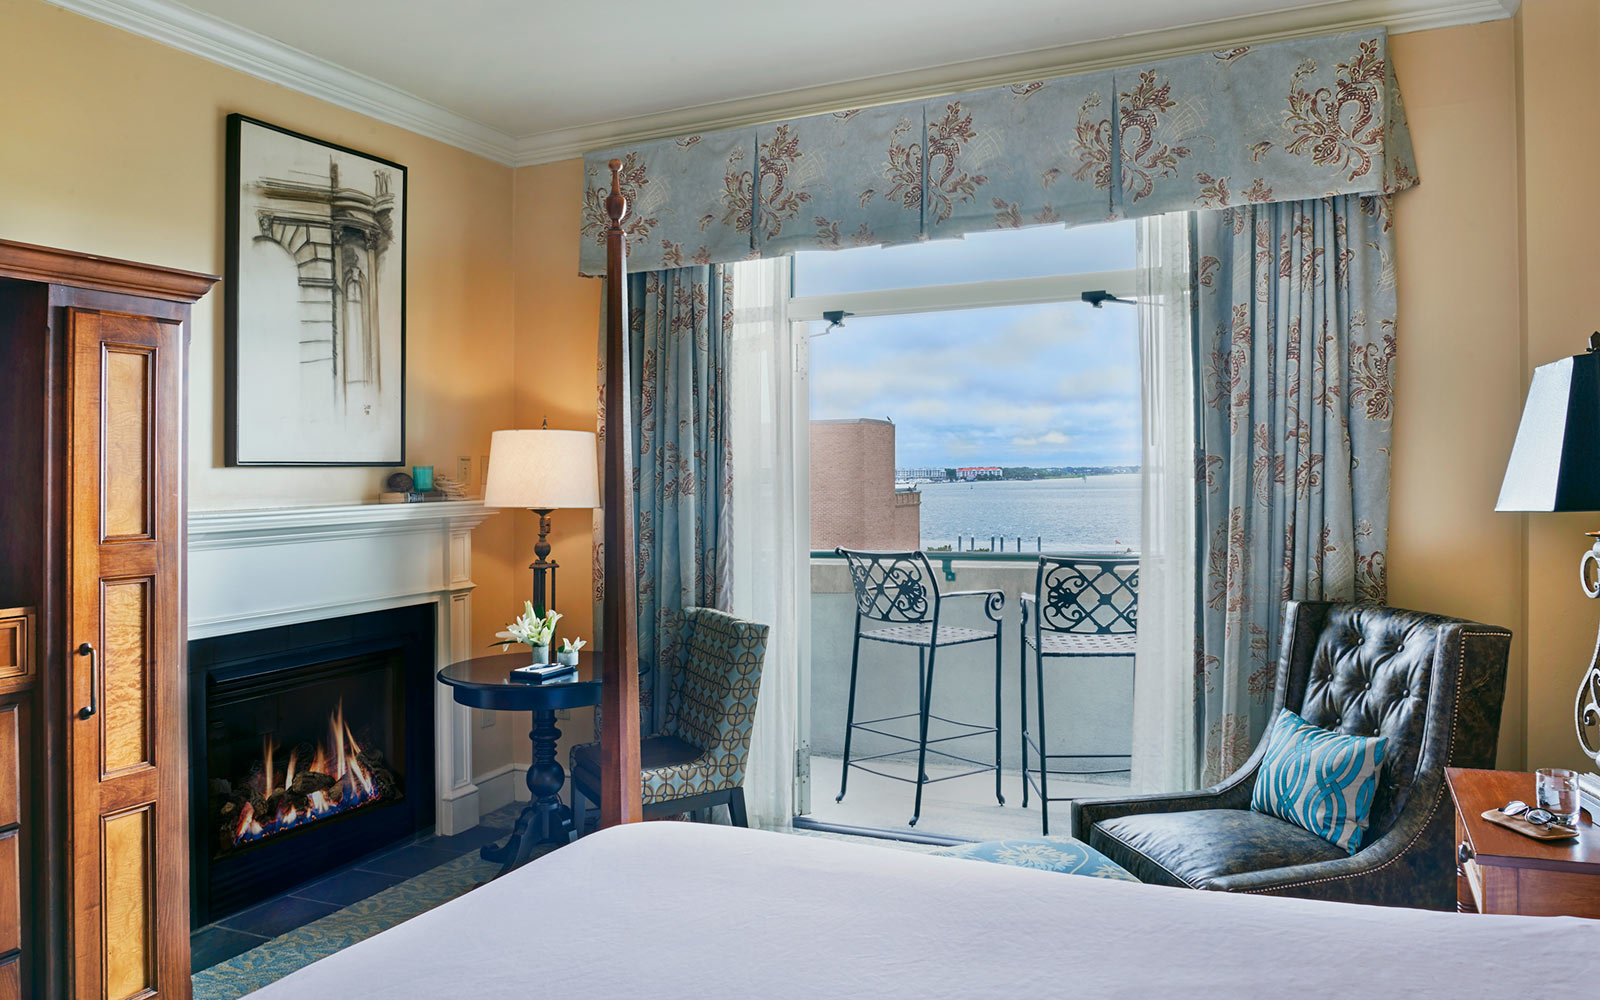 HarbourView Inn, Charleston, South Carolina